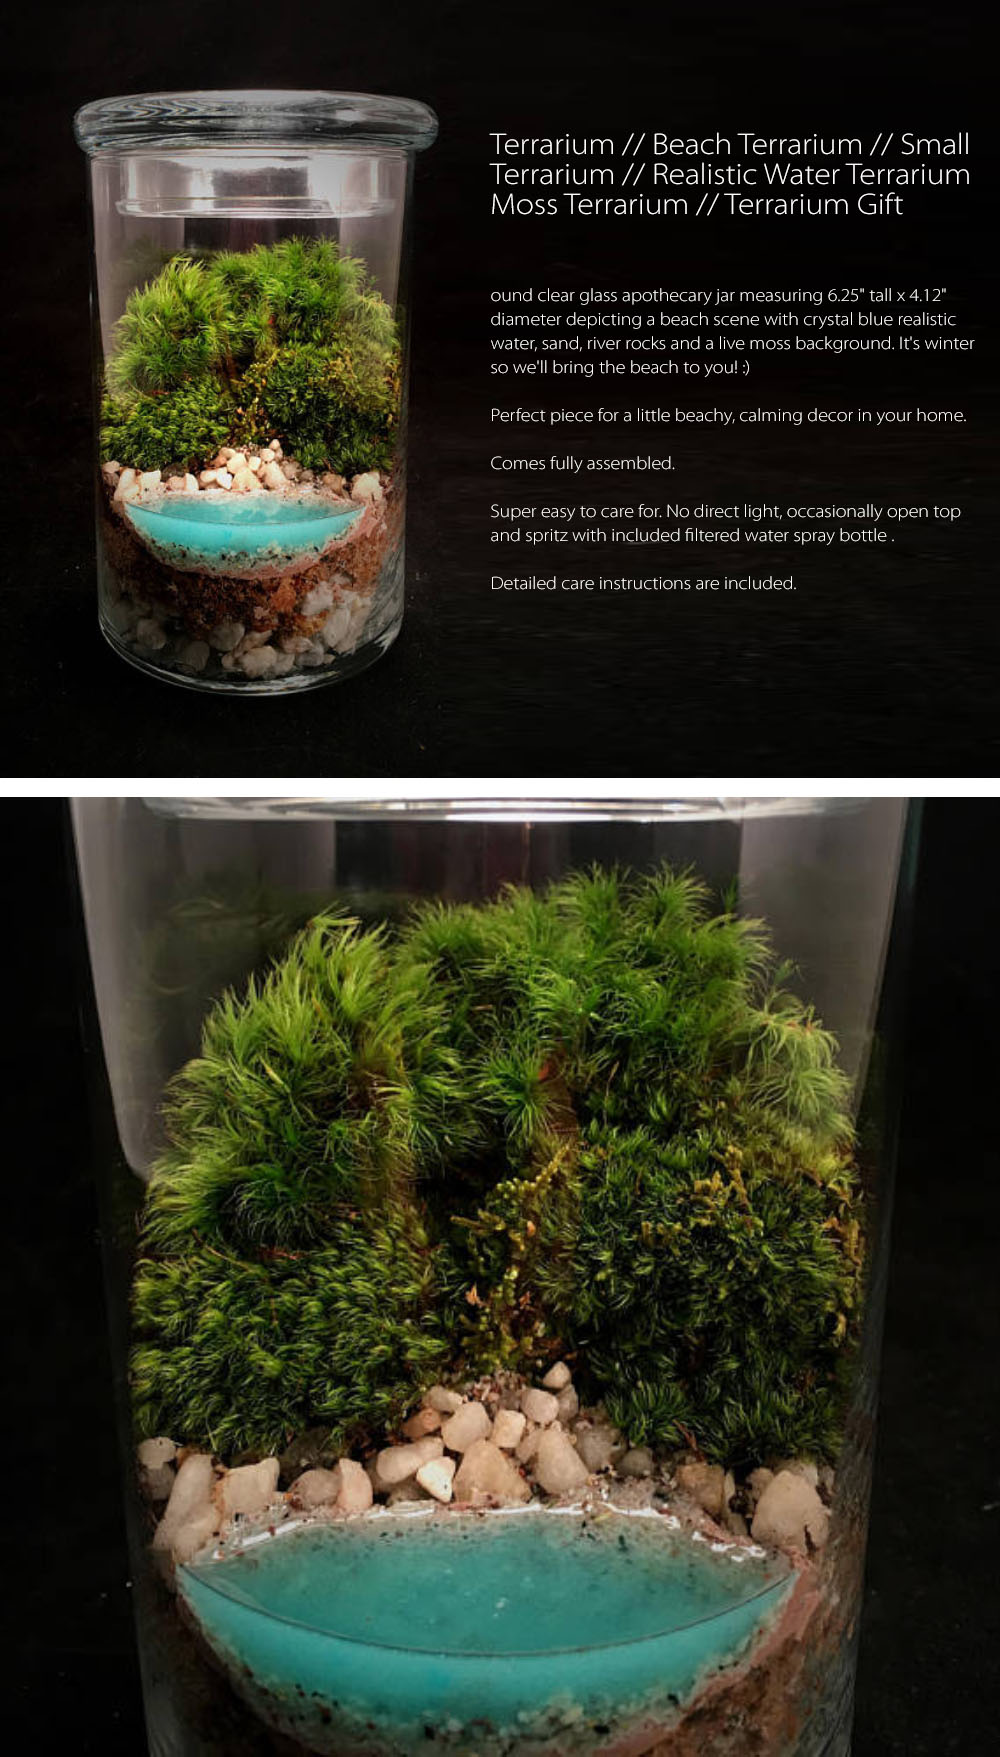 Realistic Water Terrarium  Round clear glass apothecary jar